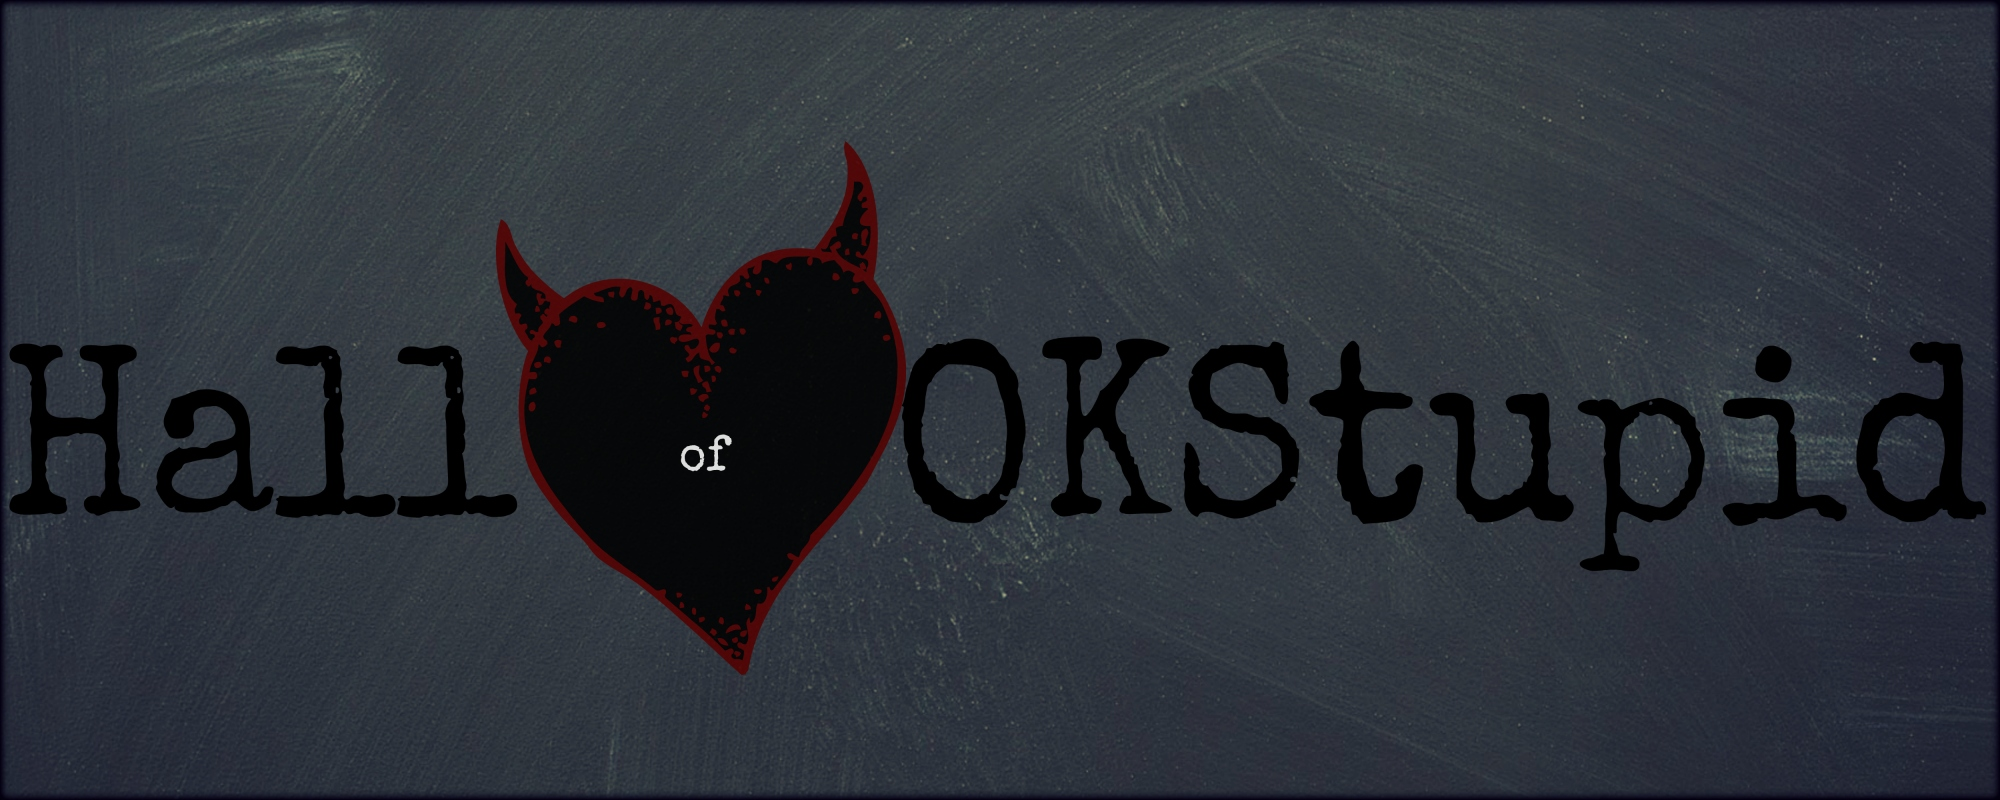 Hall of OKStupid Banner | The Lonely Tribalist